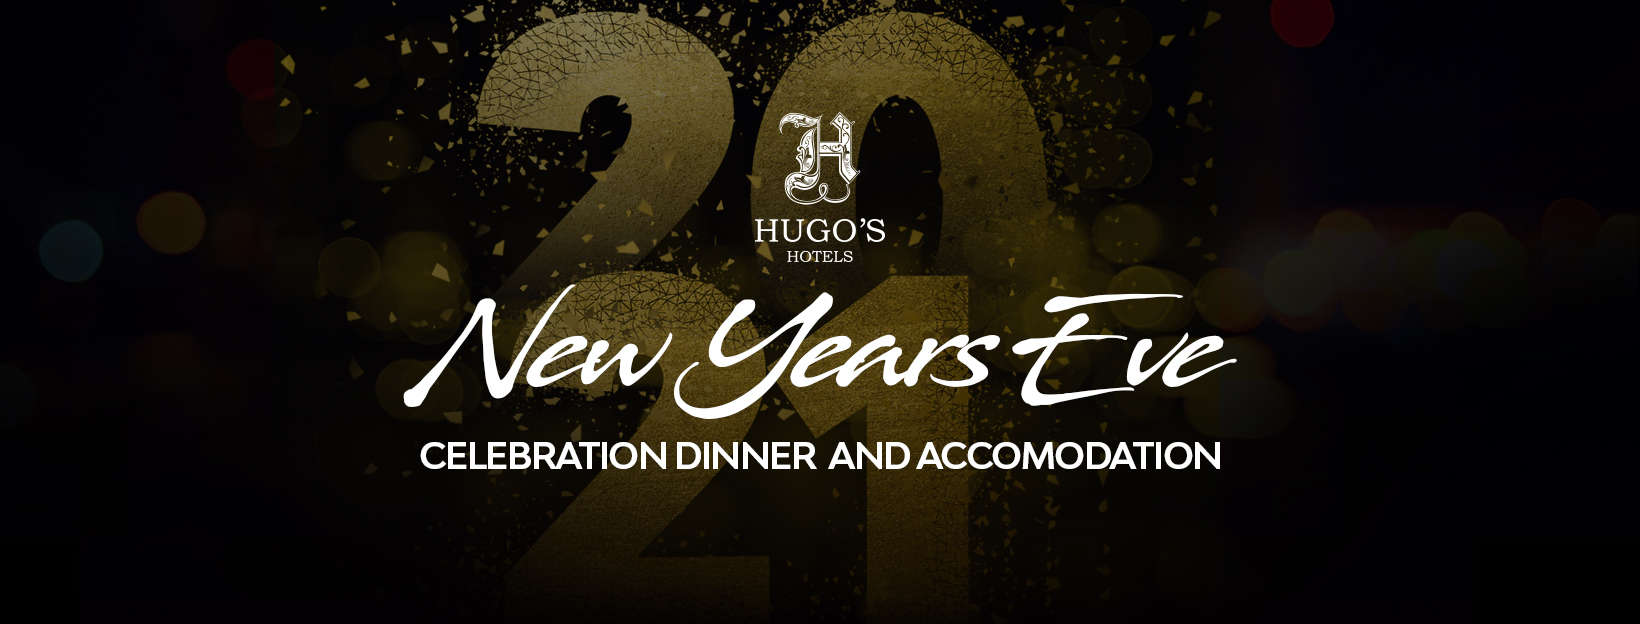 New Year's Eve at Hugo's Hotels